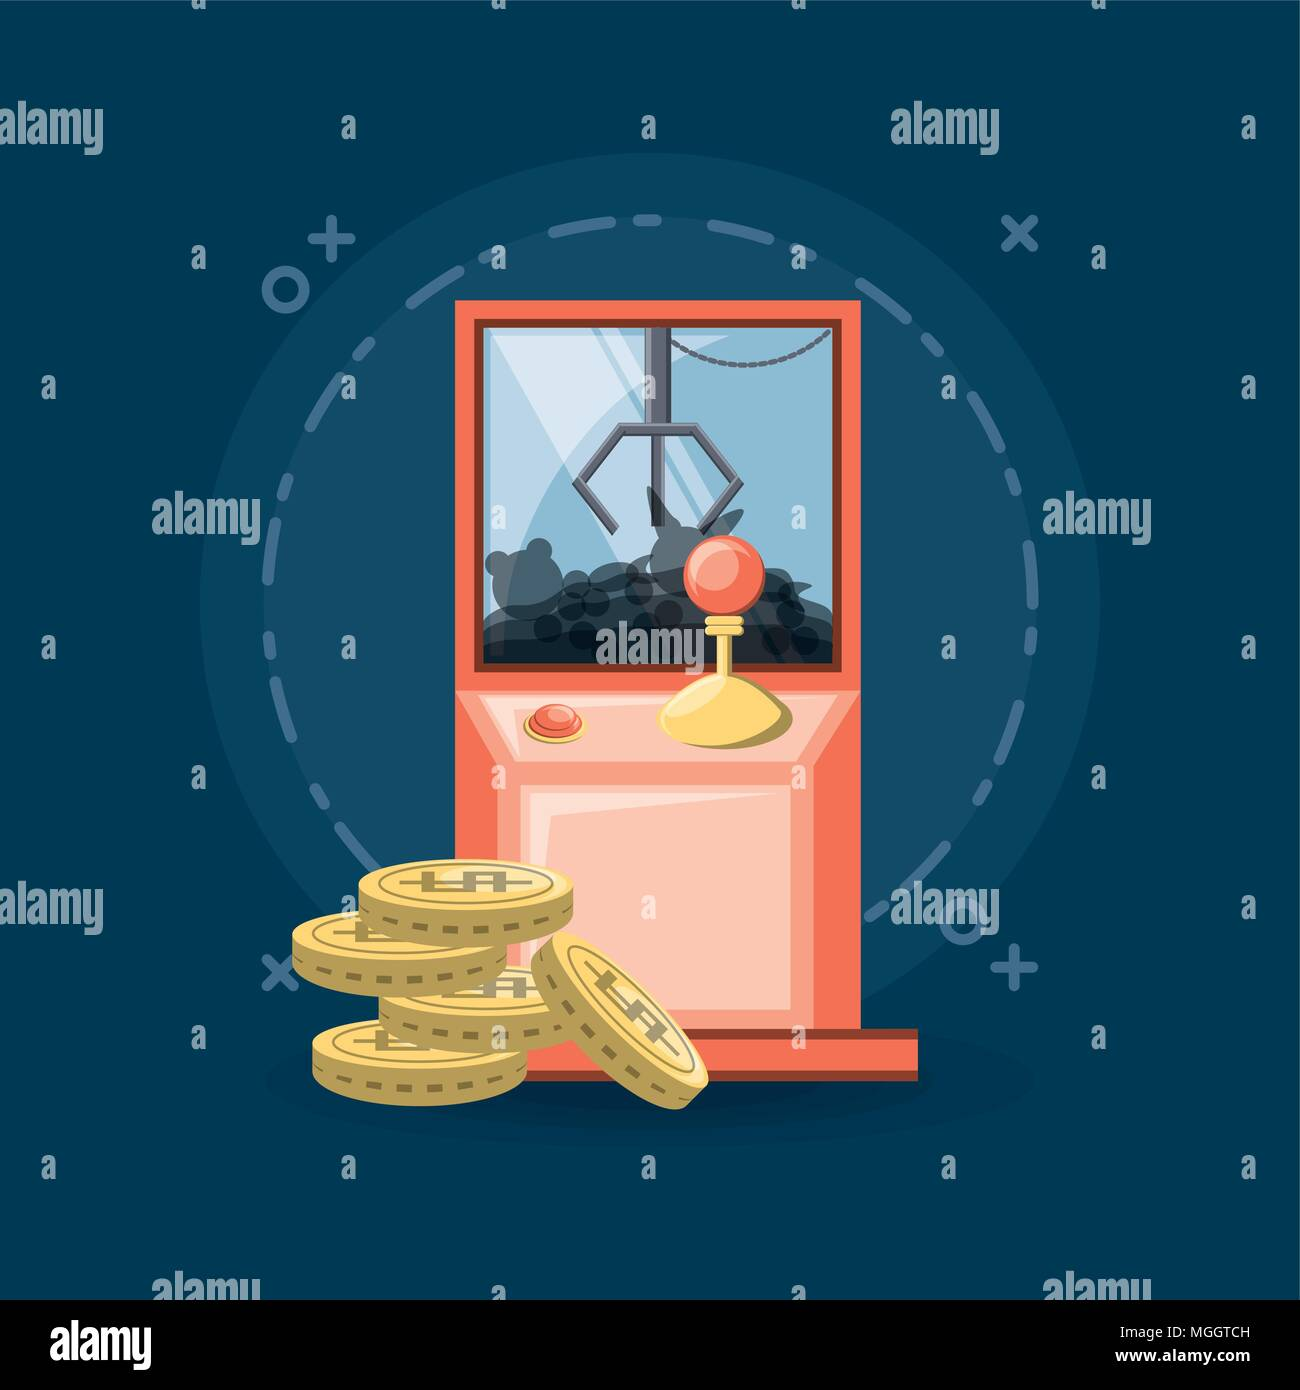 arcade claw machine and coins icon over blue background, colorful design. vector illustration - Stock Image